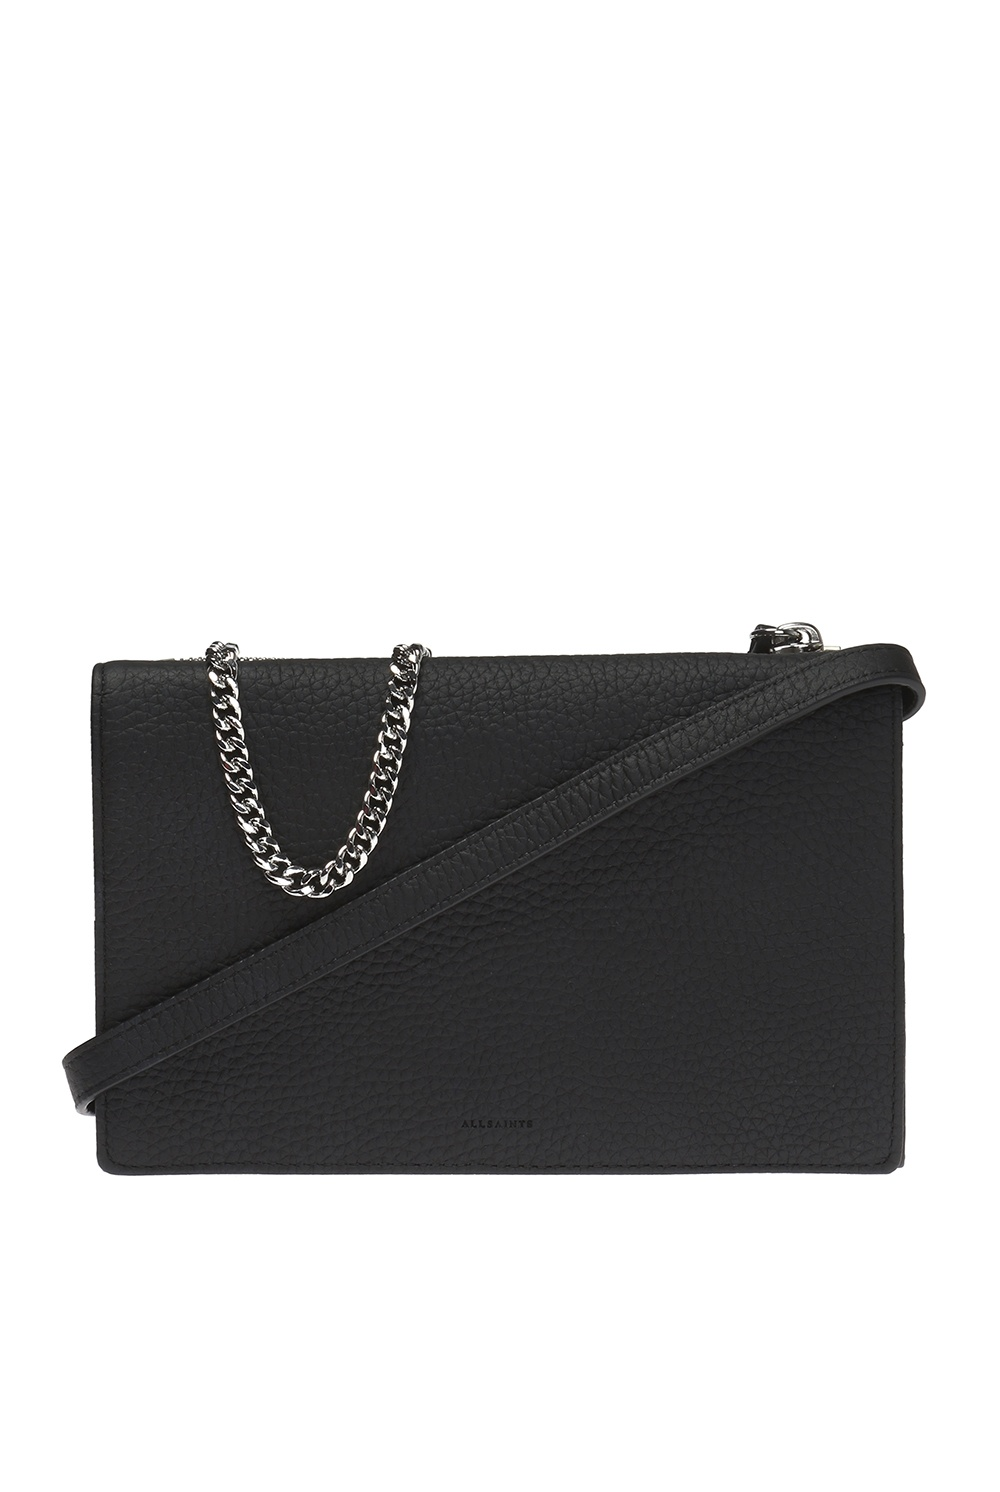 AllSaints 'Fetch' shoulder bag